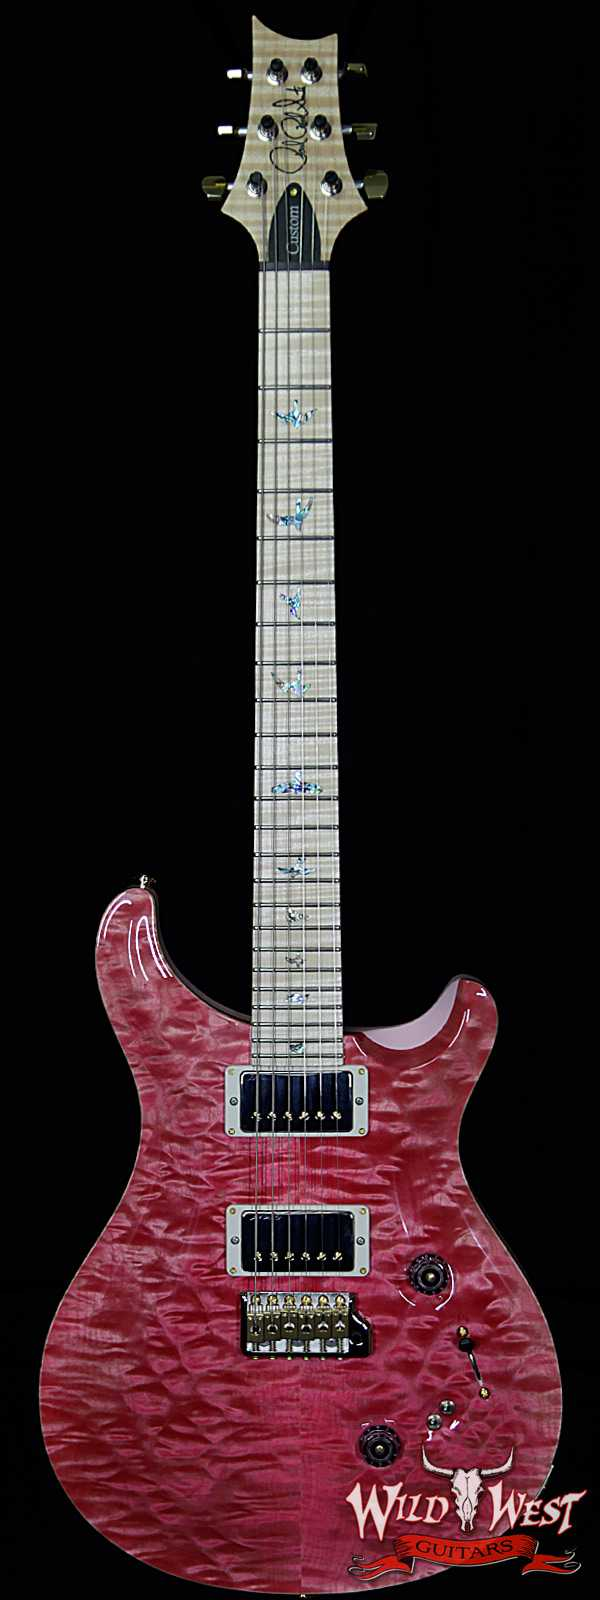 PRS Wood Library 10 Top Custom 24-08 Quilt Top Flame Neck and Fretboard Bonnie Pink